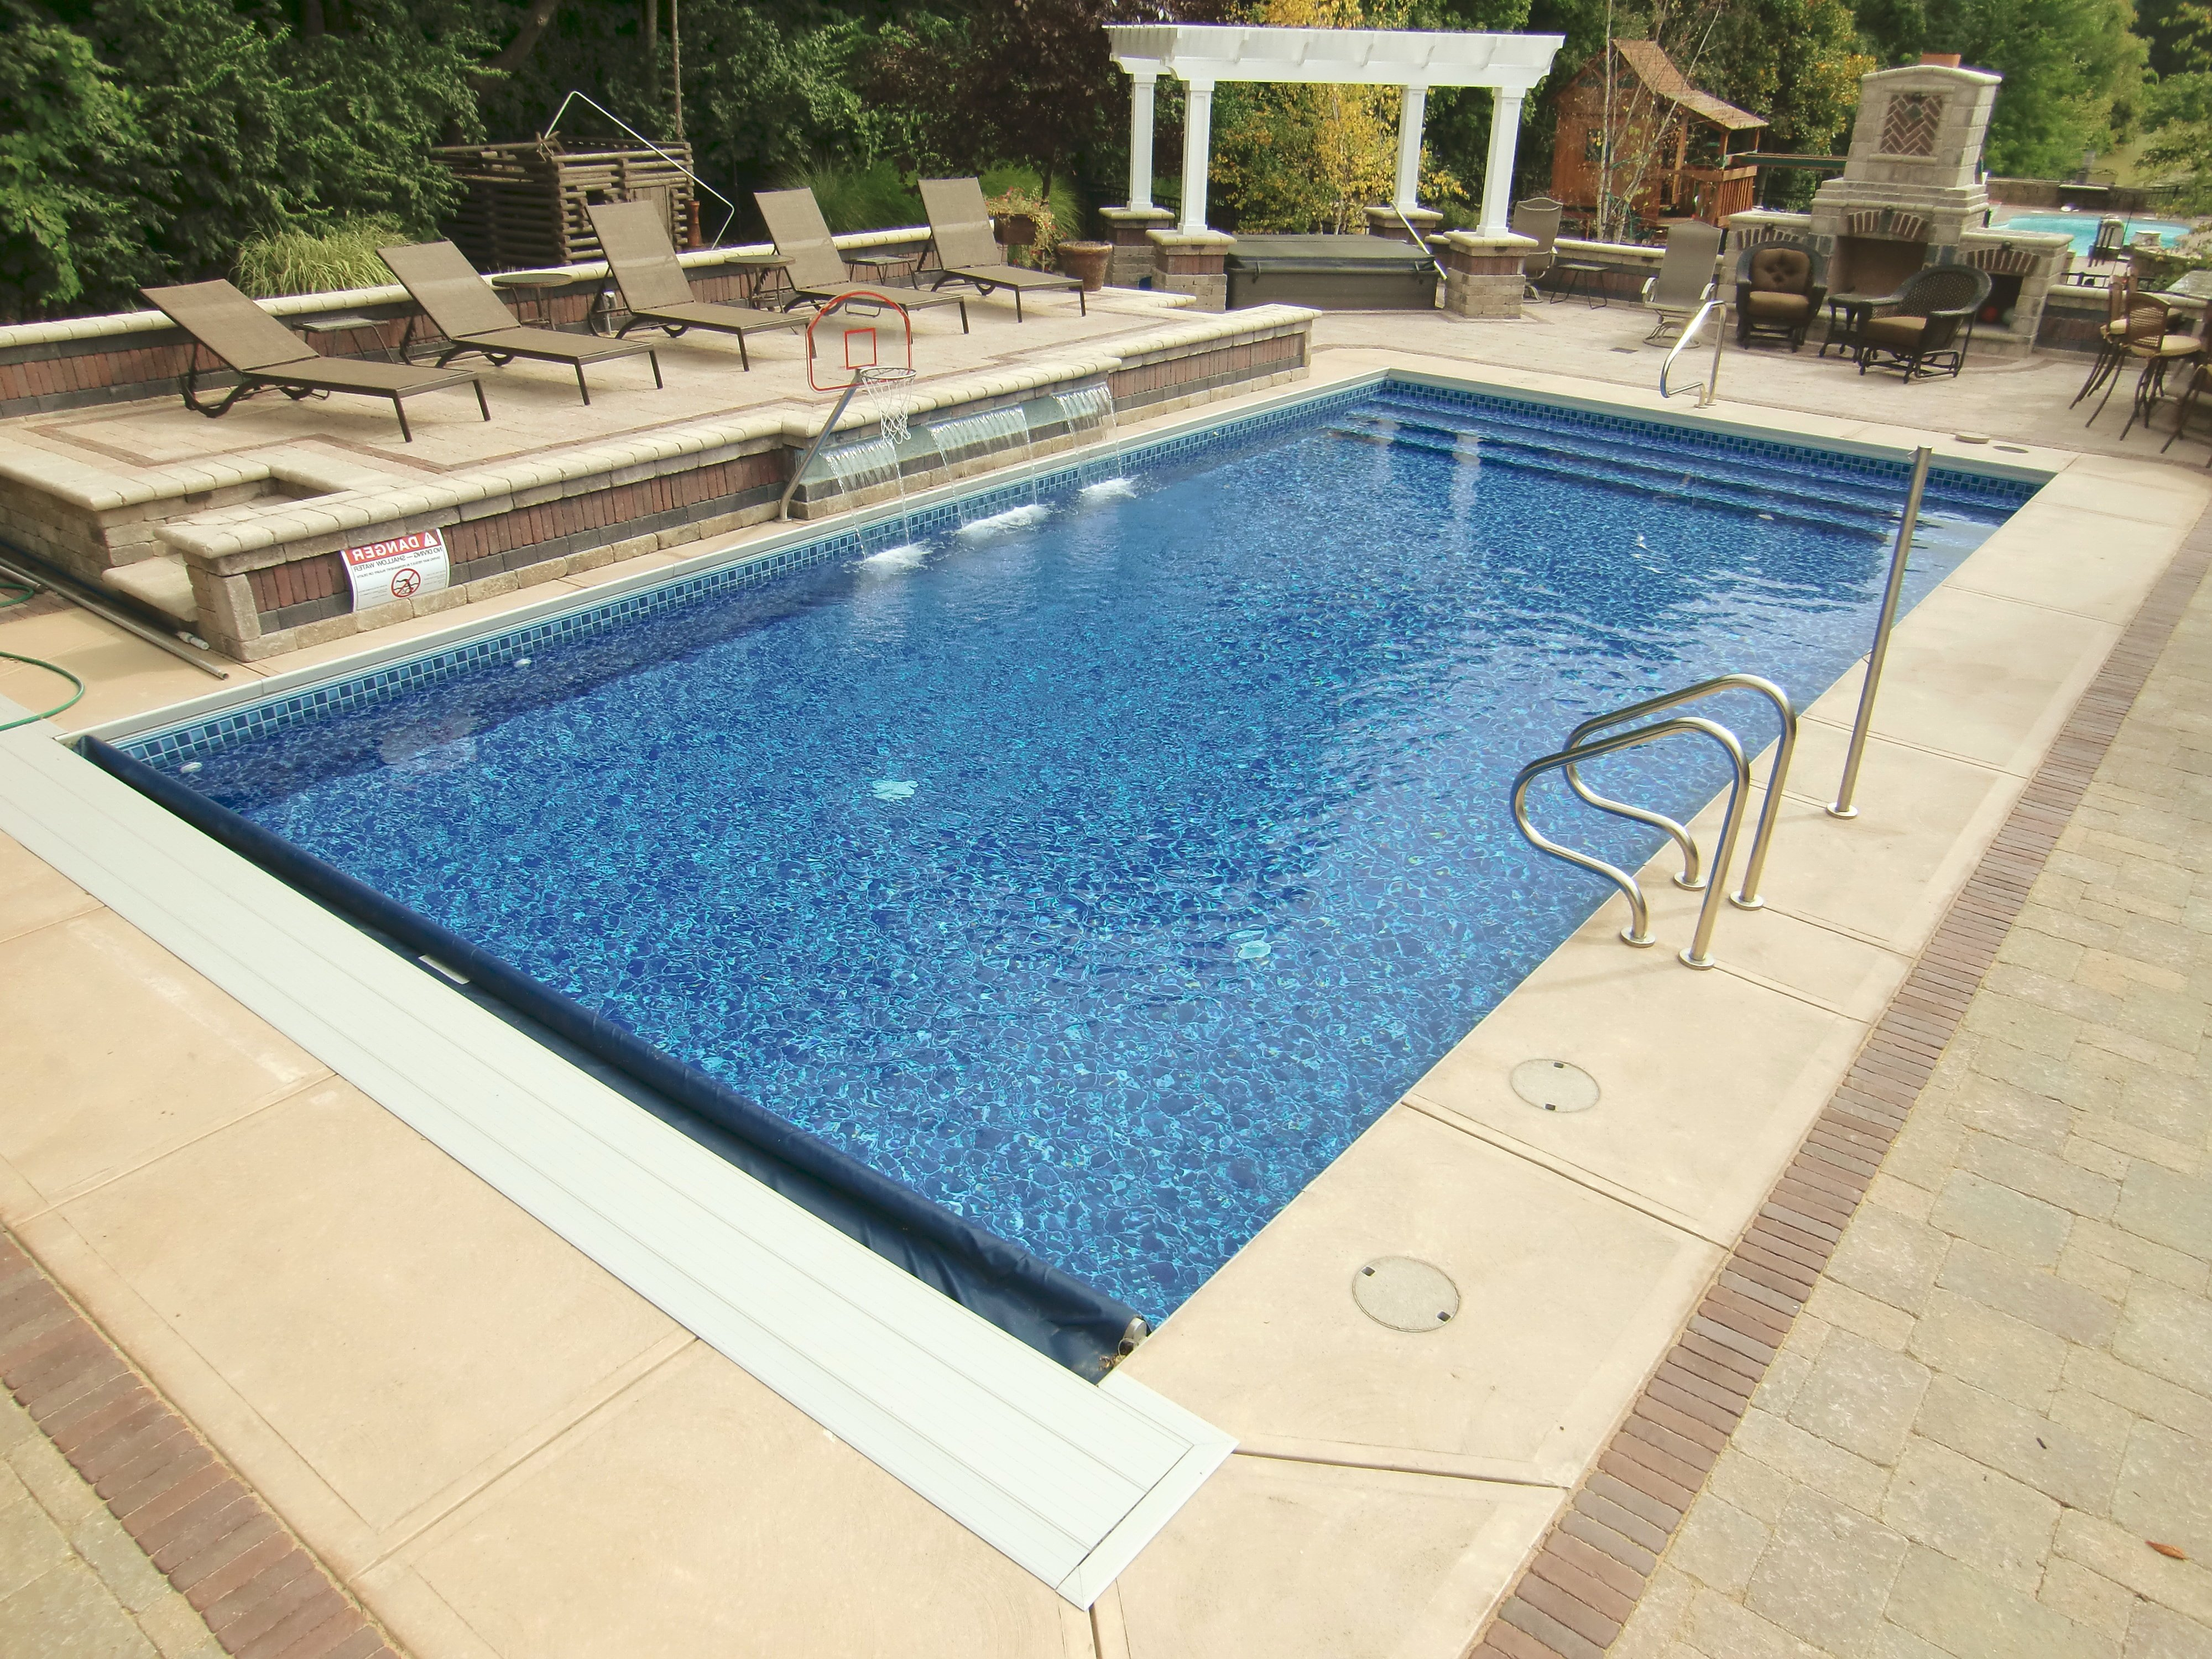 Vinyl Liner Pools In Central Indiana- Top 6 Reasons to Buy